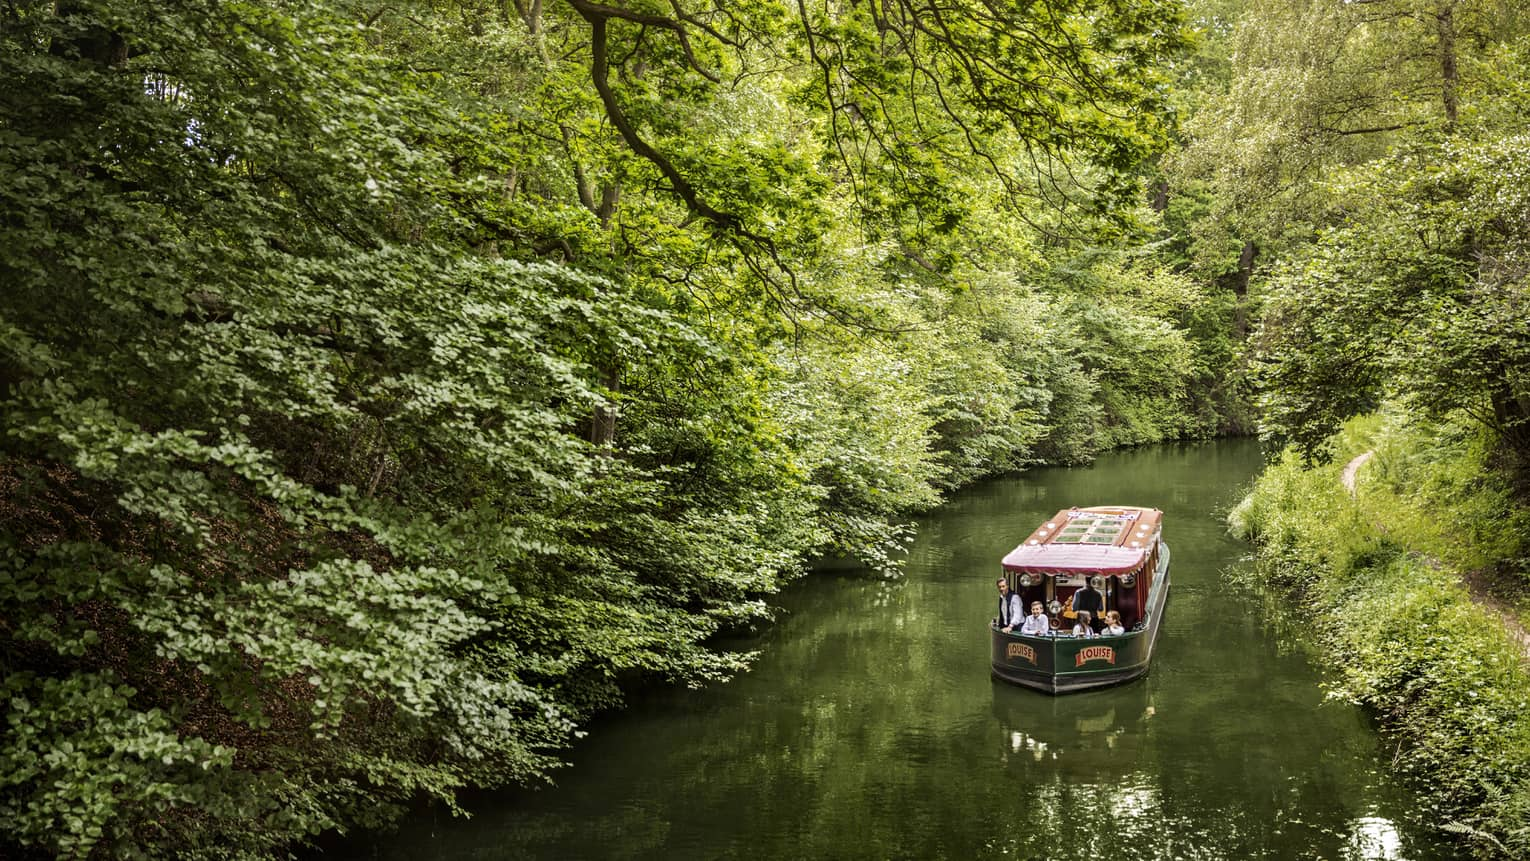 Family on canal boat Louise rides along forest-lined river